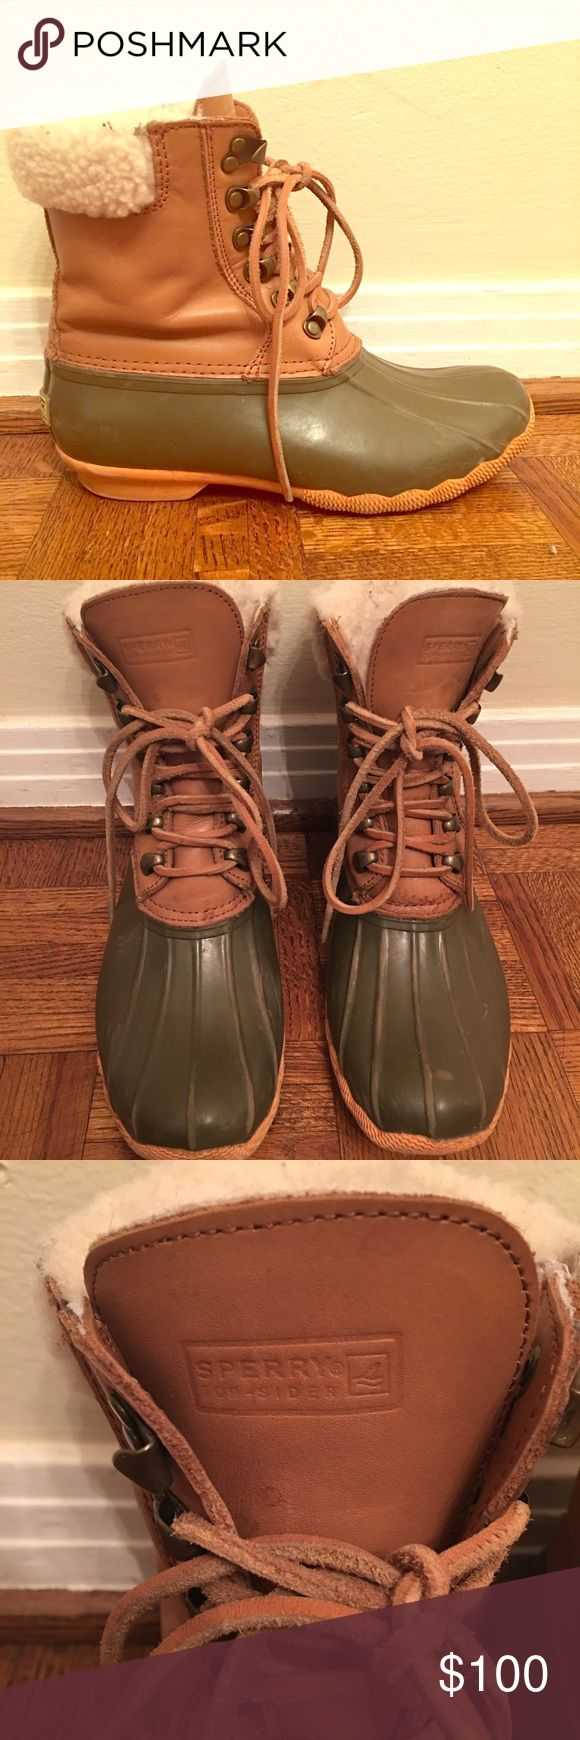 Sperry Topsider Women's Duck Boots Waterproof boot, great for cold rain or snow. Furry material inside boot keeps feet warm. Originally bought from J. Crew but they are Sperry brand. Sperry Top-Sider Shoes Winter & Rain Boots